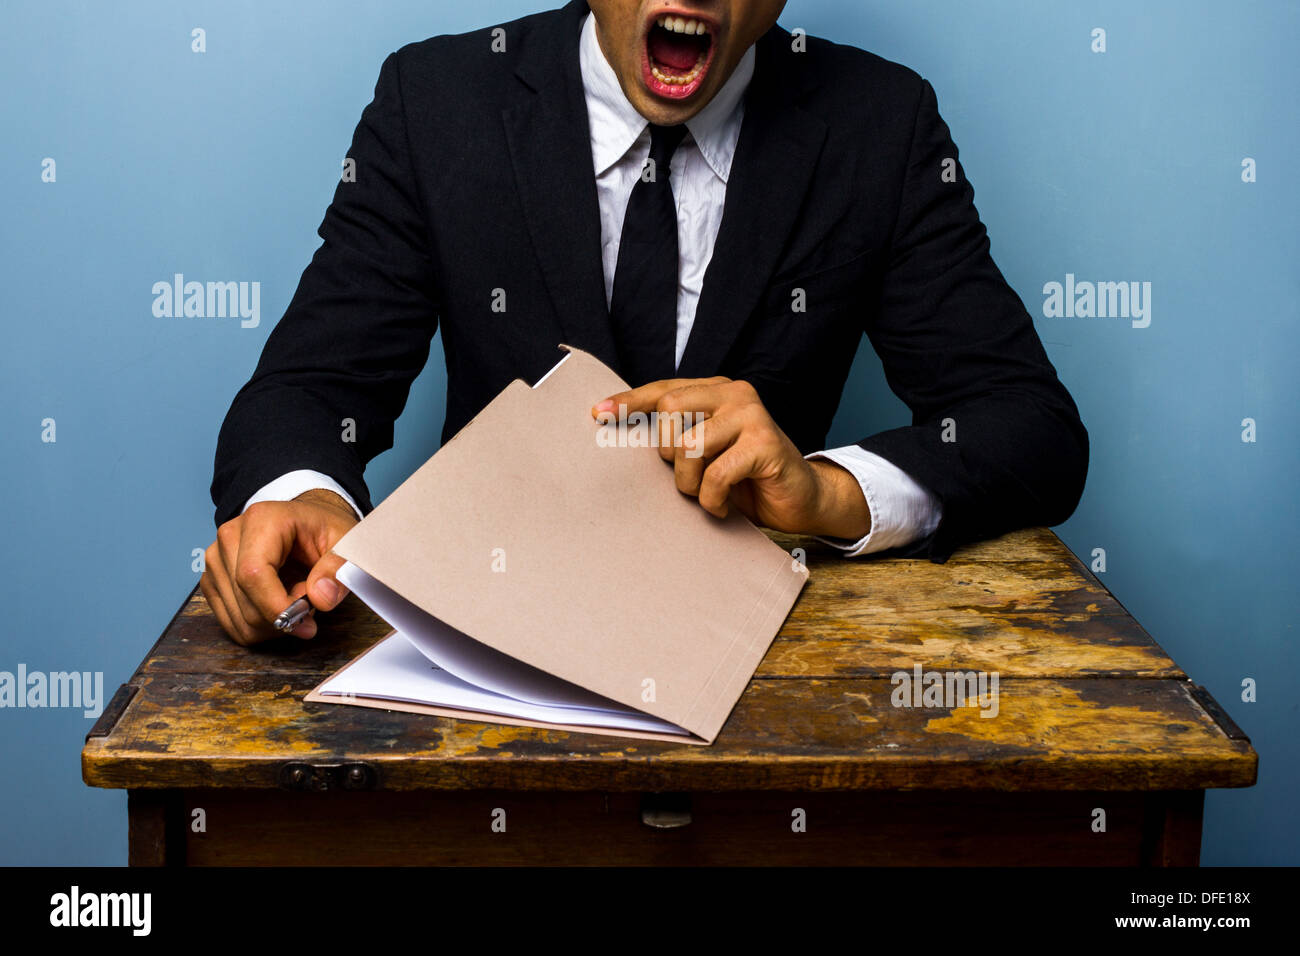 Tired businessman is looking over important documents - Stock Image